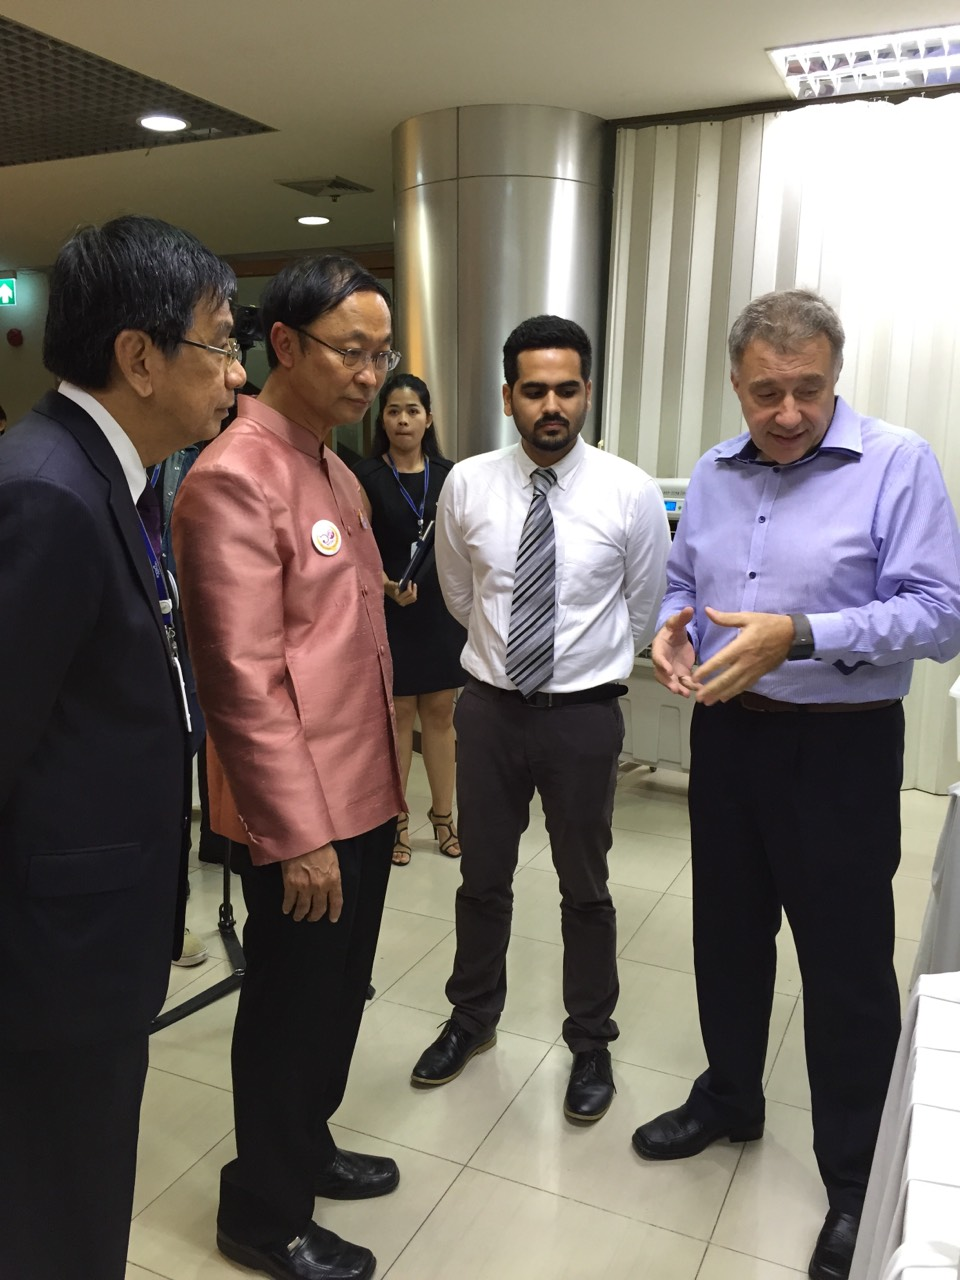 Austrianova had the privilege and honor to present our technology to the Minister of Science and Technology of Thailand, Dr. Pichet Durongkaveroj